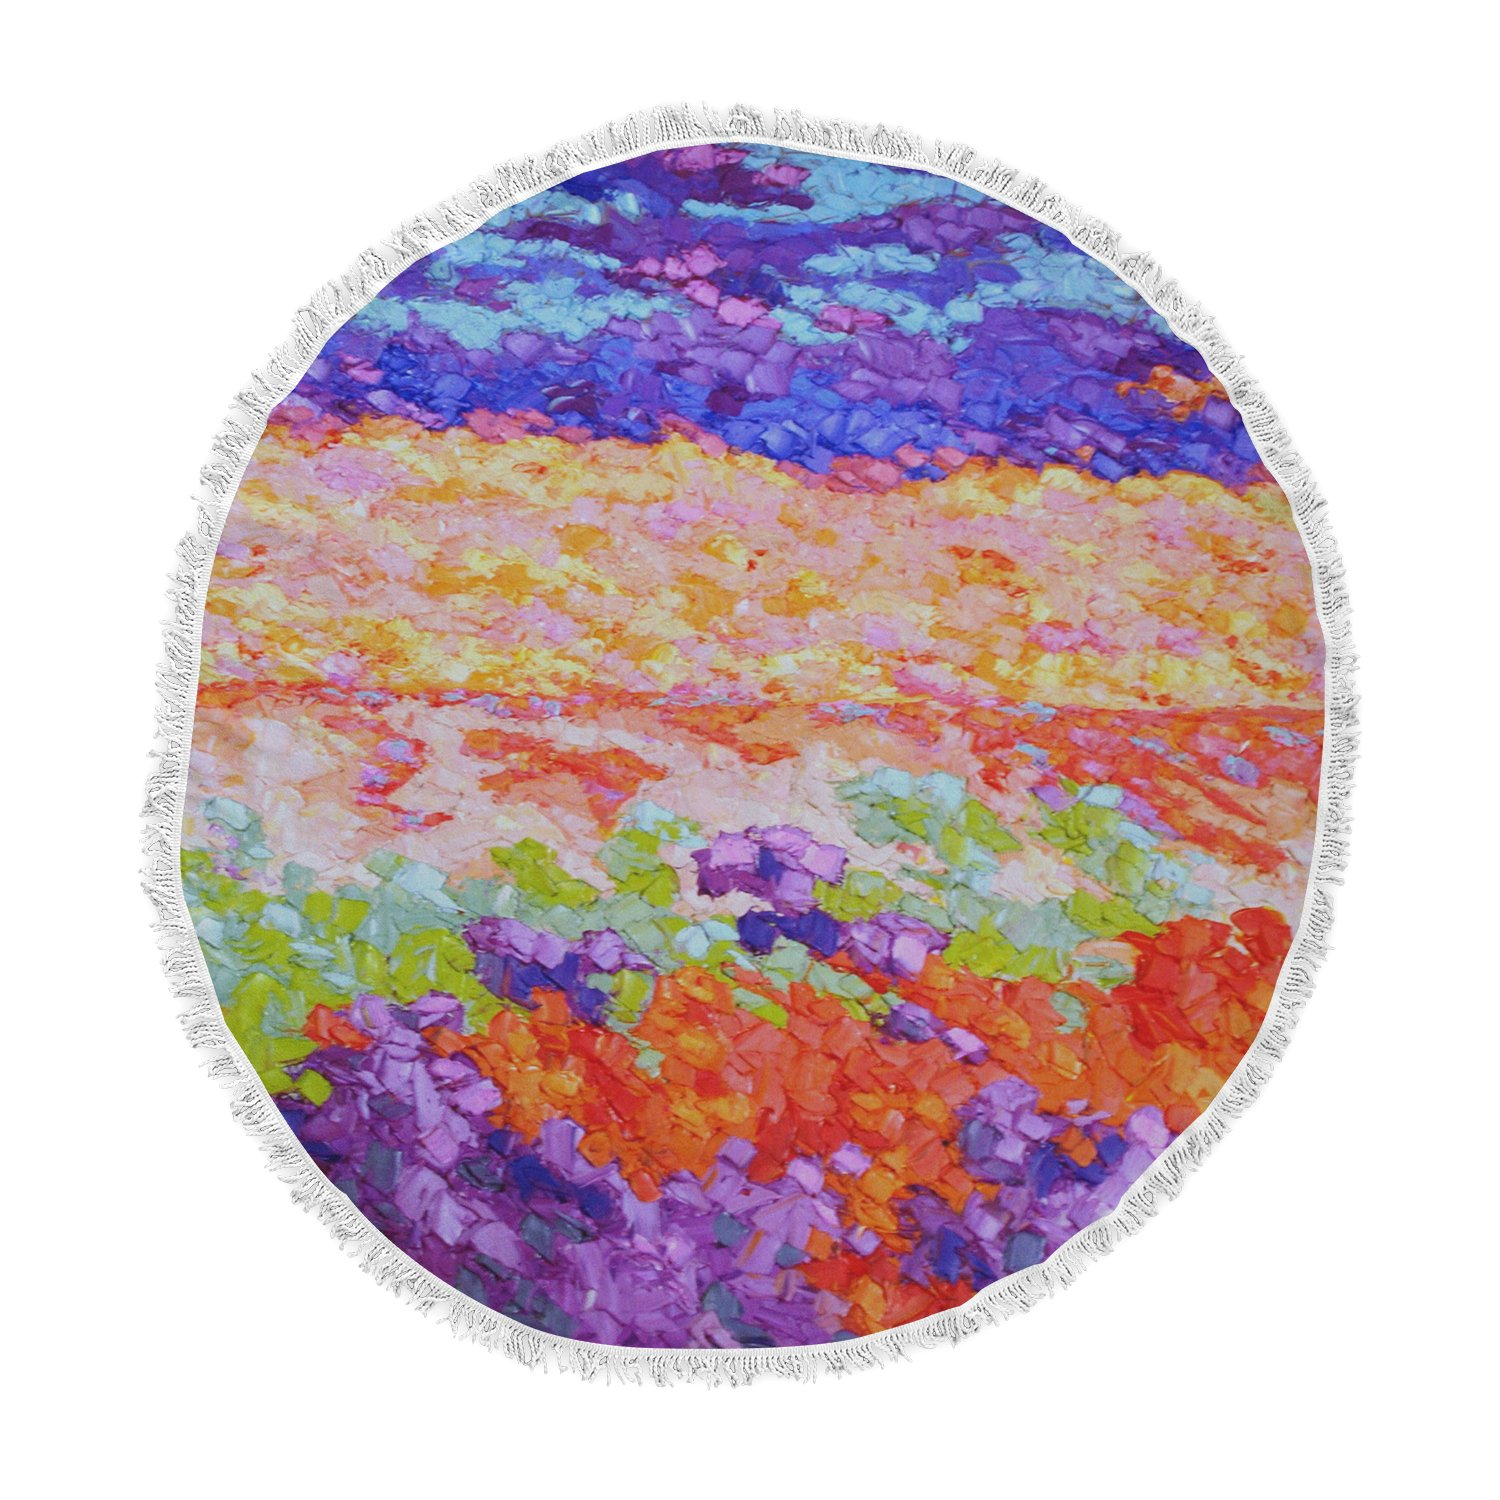 Kess InHouse Jeff Ferst Earthly Delights Floral Abstract Round Beach Towel Blanket